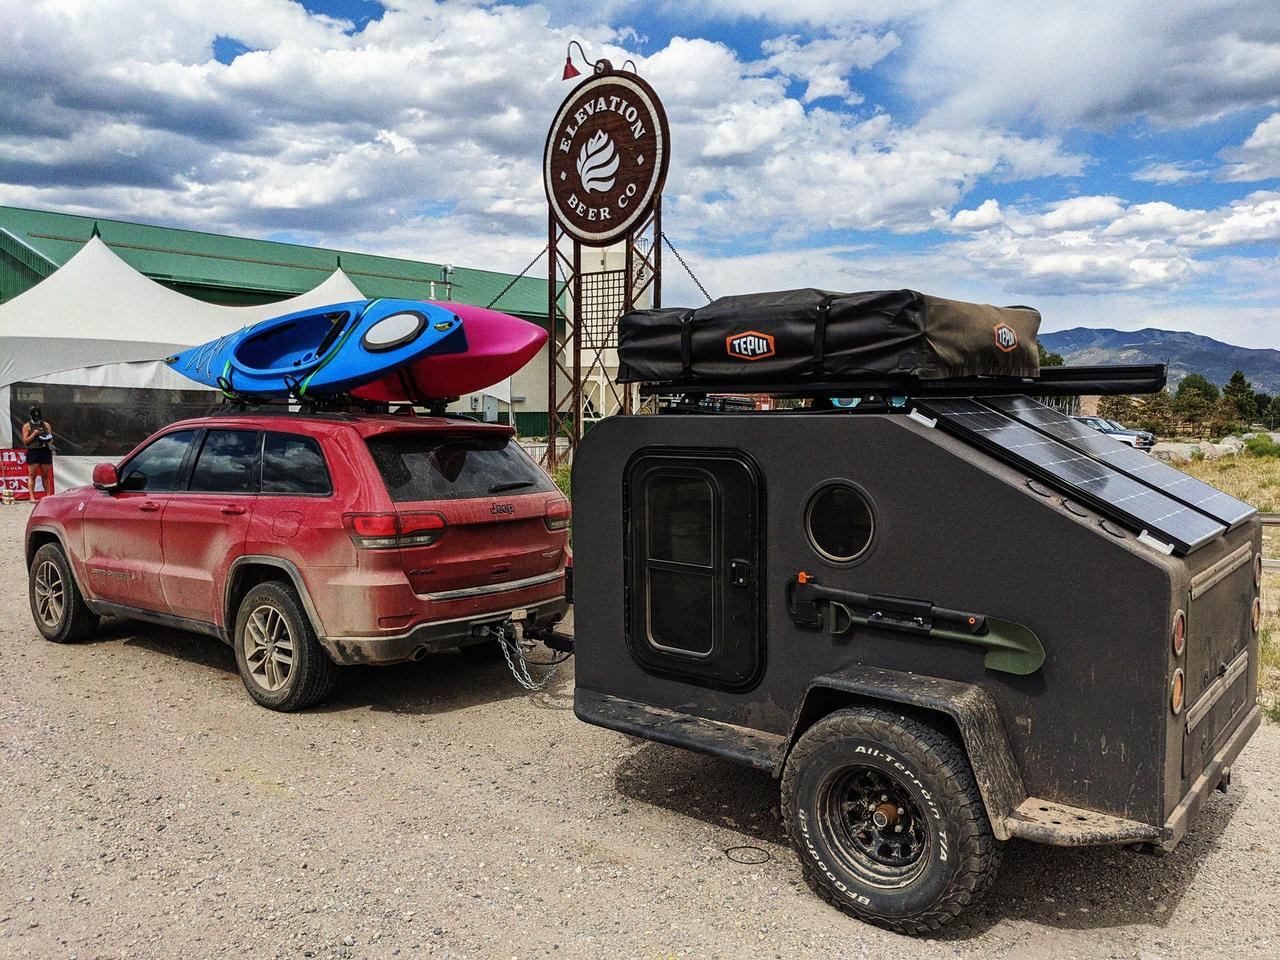 Colorado Campworks demo Nomad (NS-1) trailer gets dirty